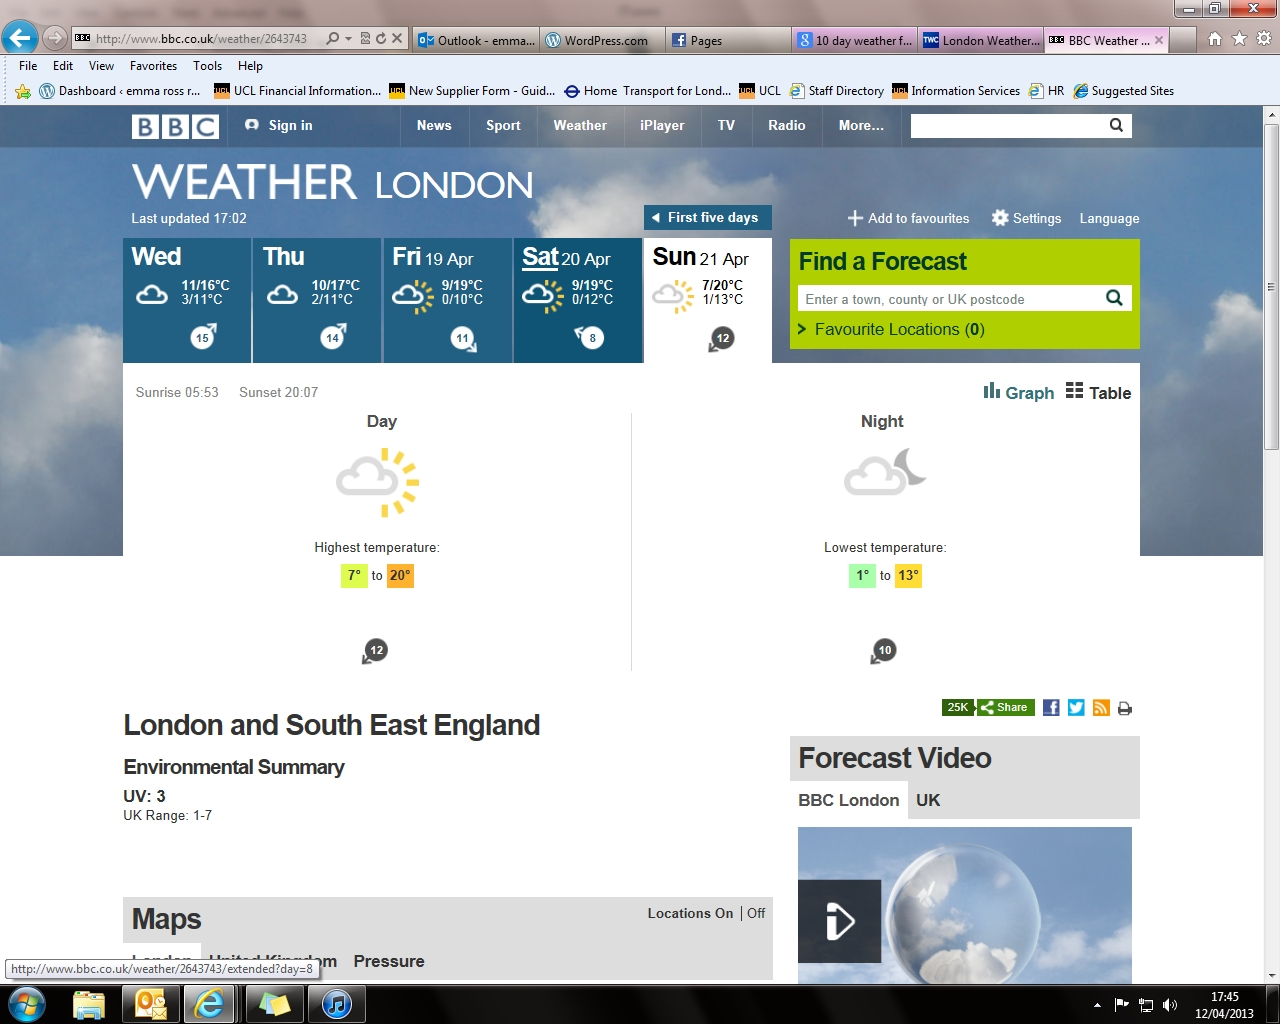 10 day weather forecasts……